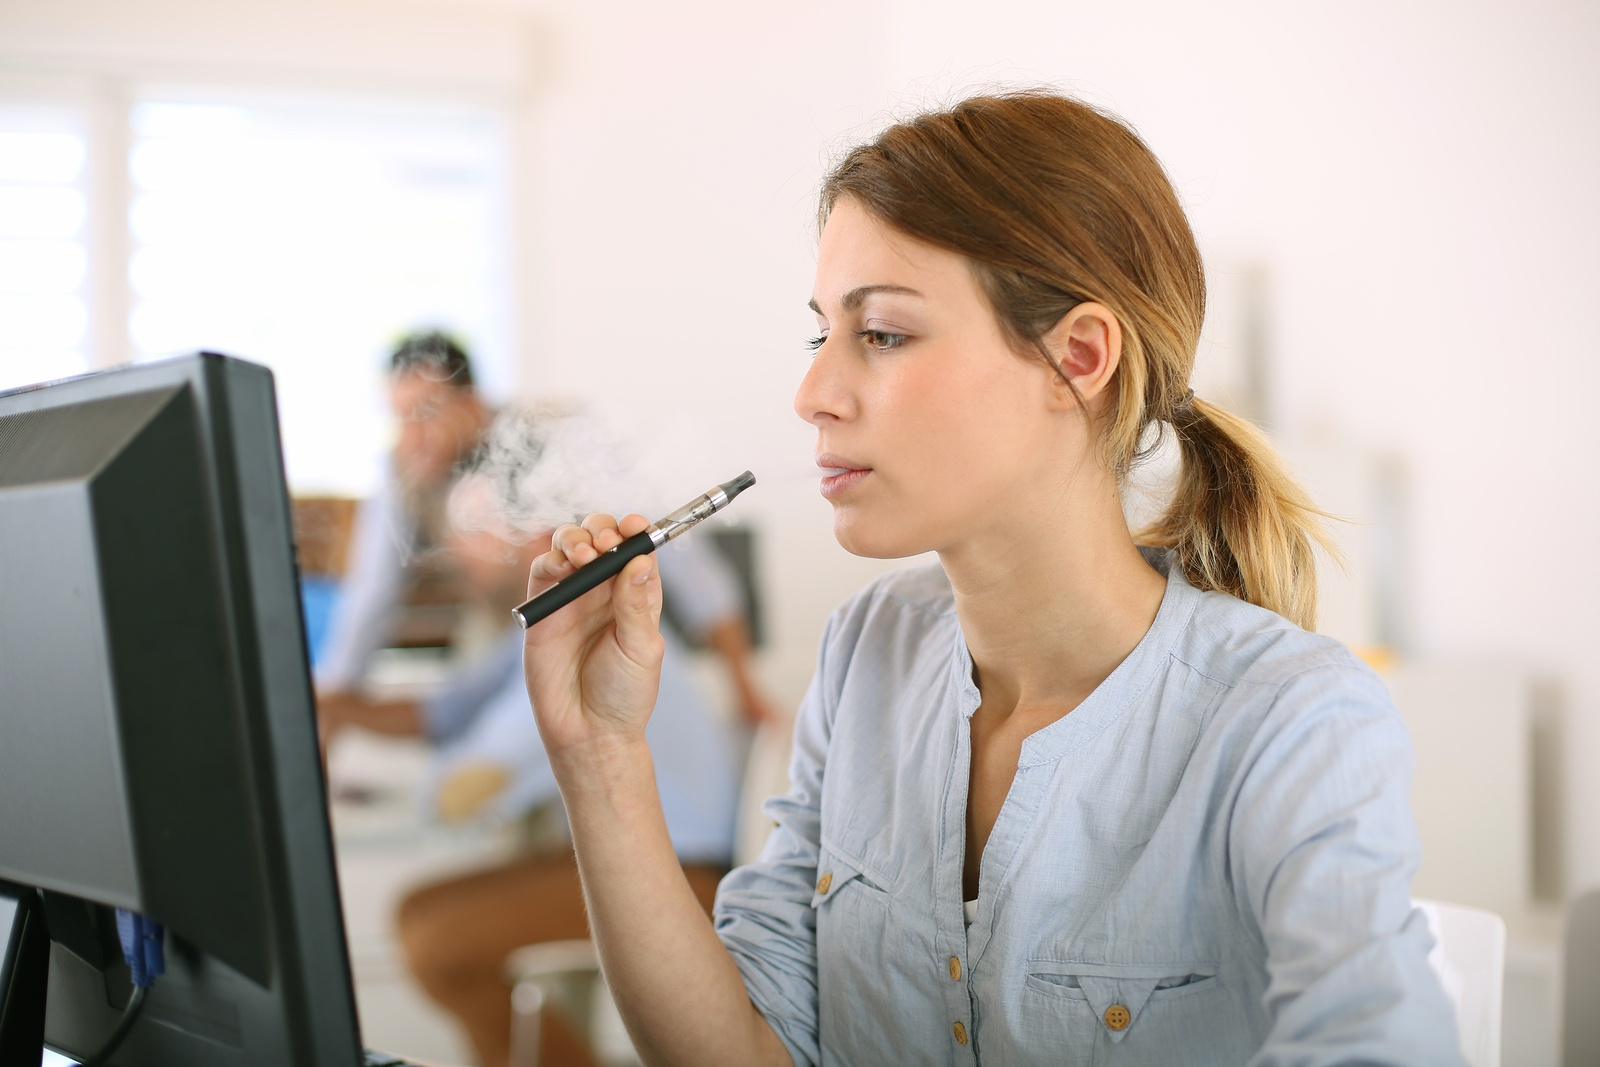 E-cigarettes Remain a Dilemma for Employers - Featured Image